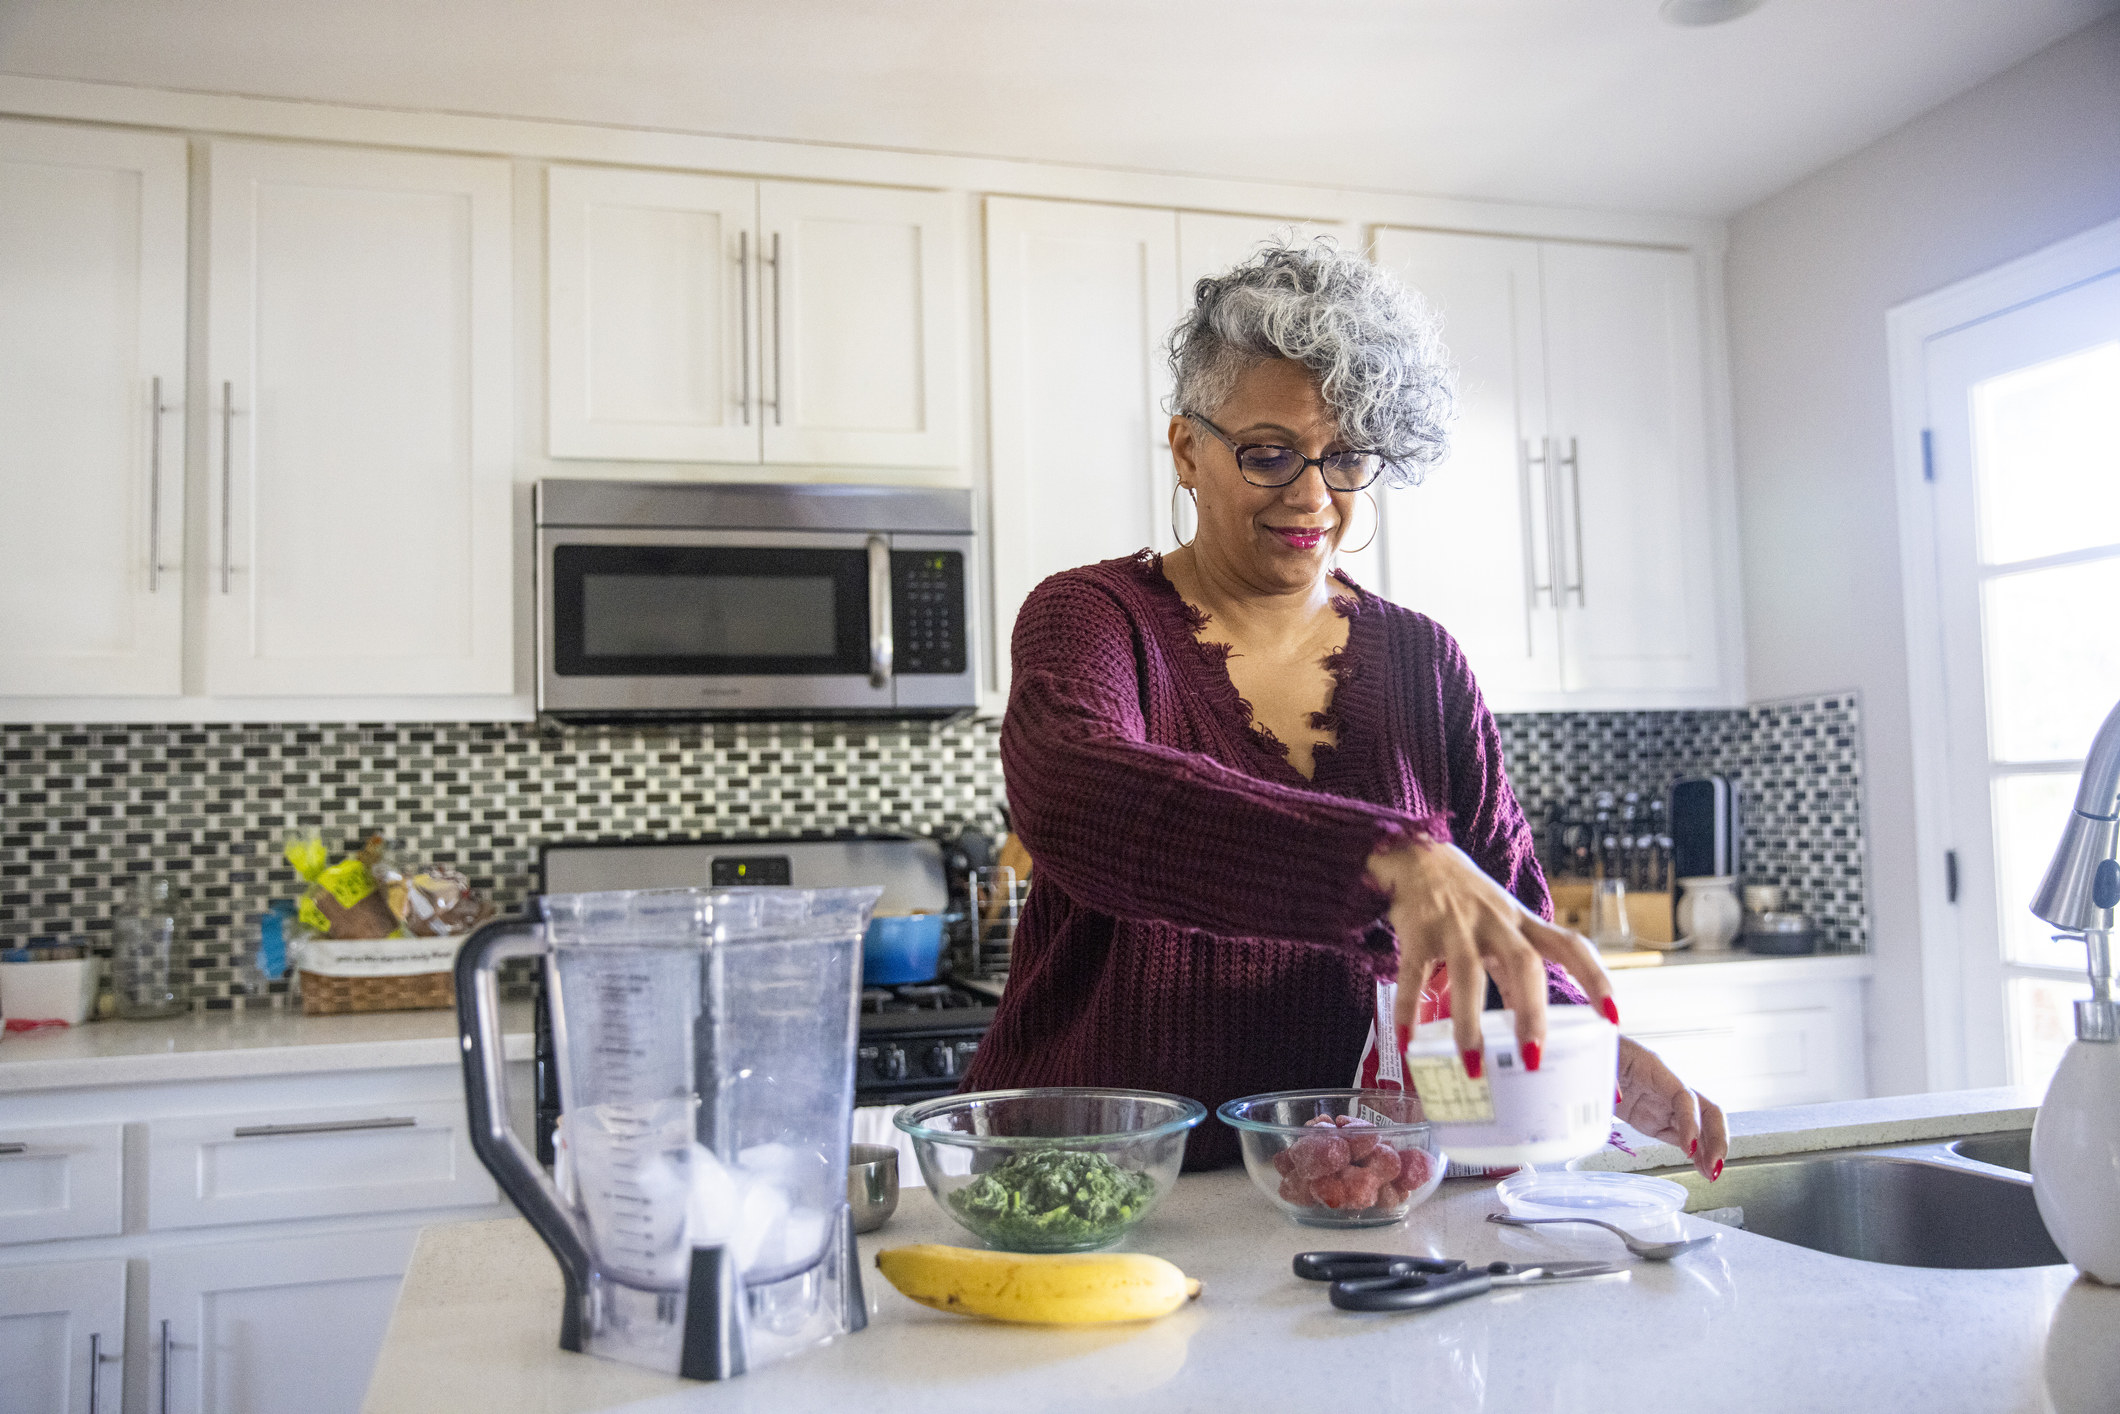 A woman organizing fruits and veggies on their countertop